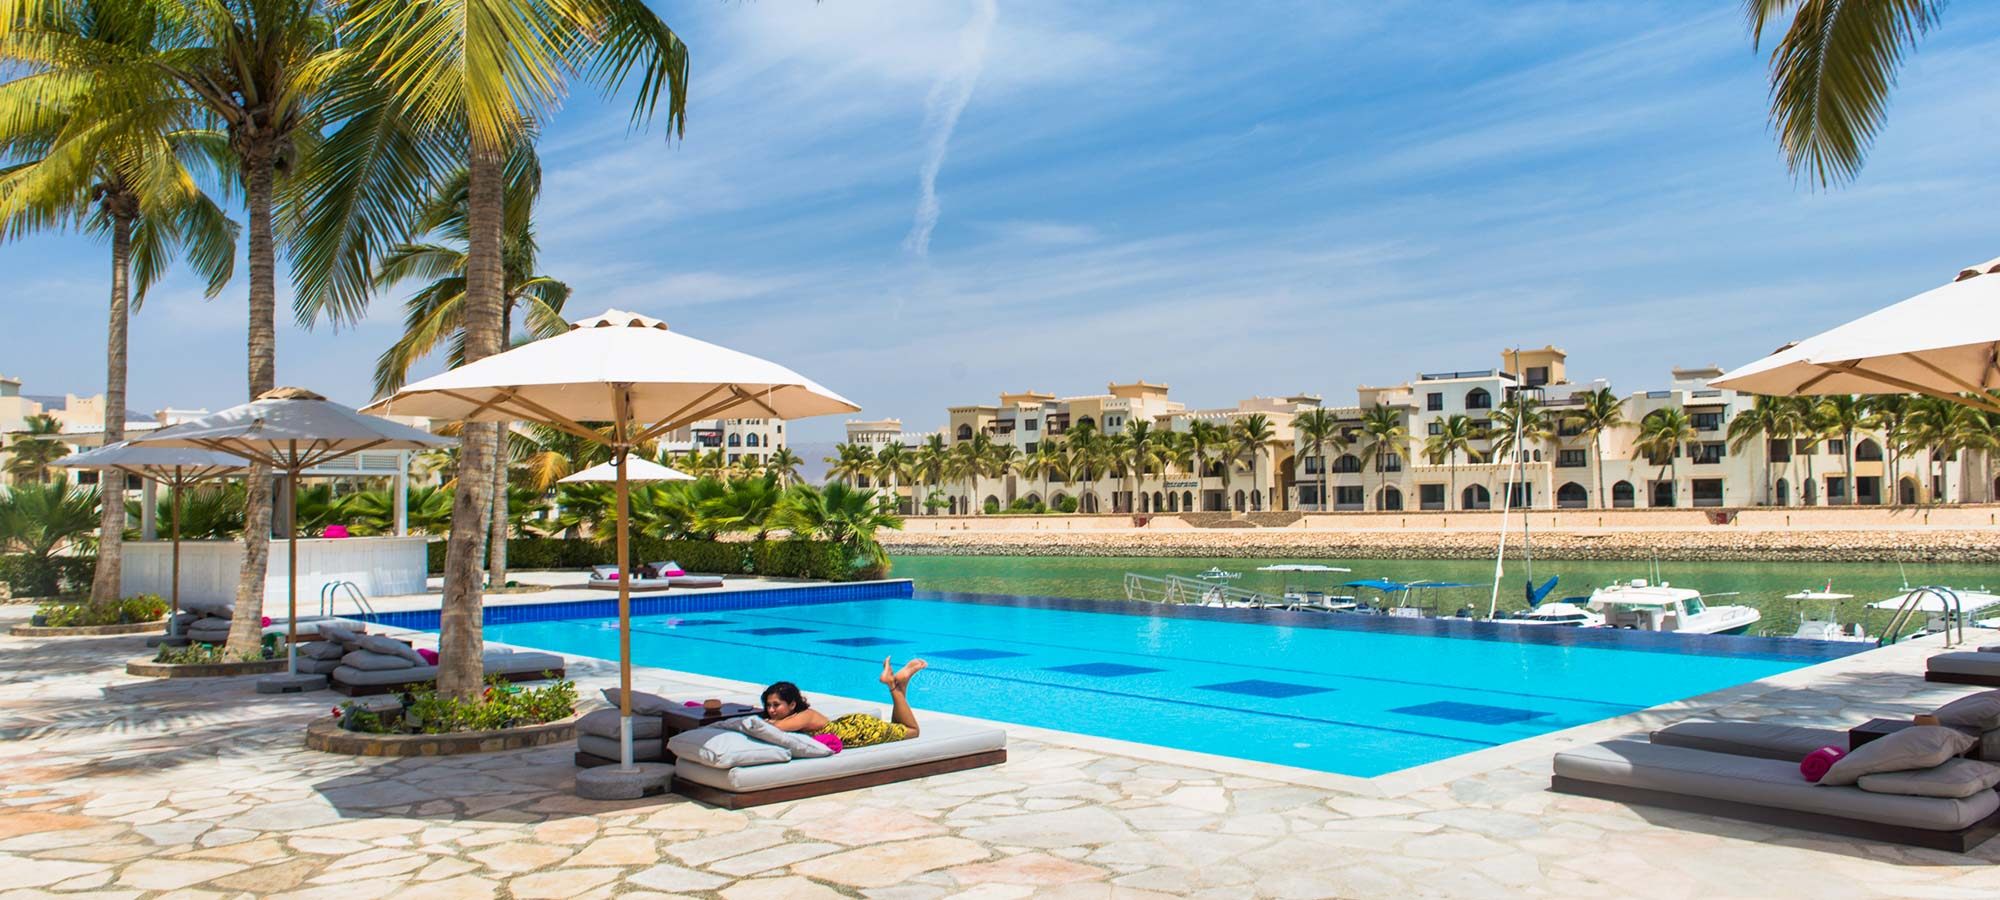 Juweira Hotel Oman Swimming Pool